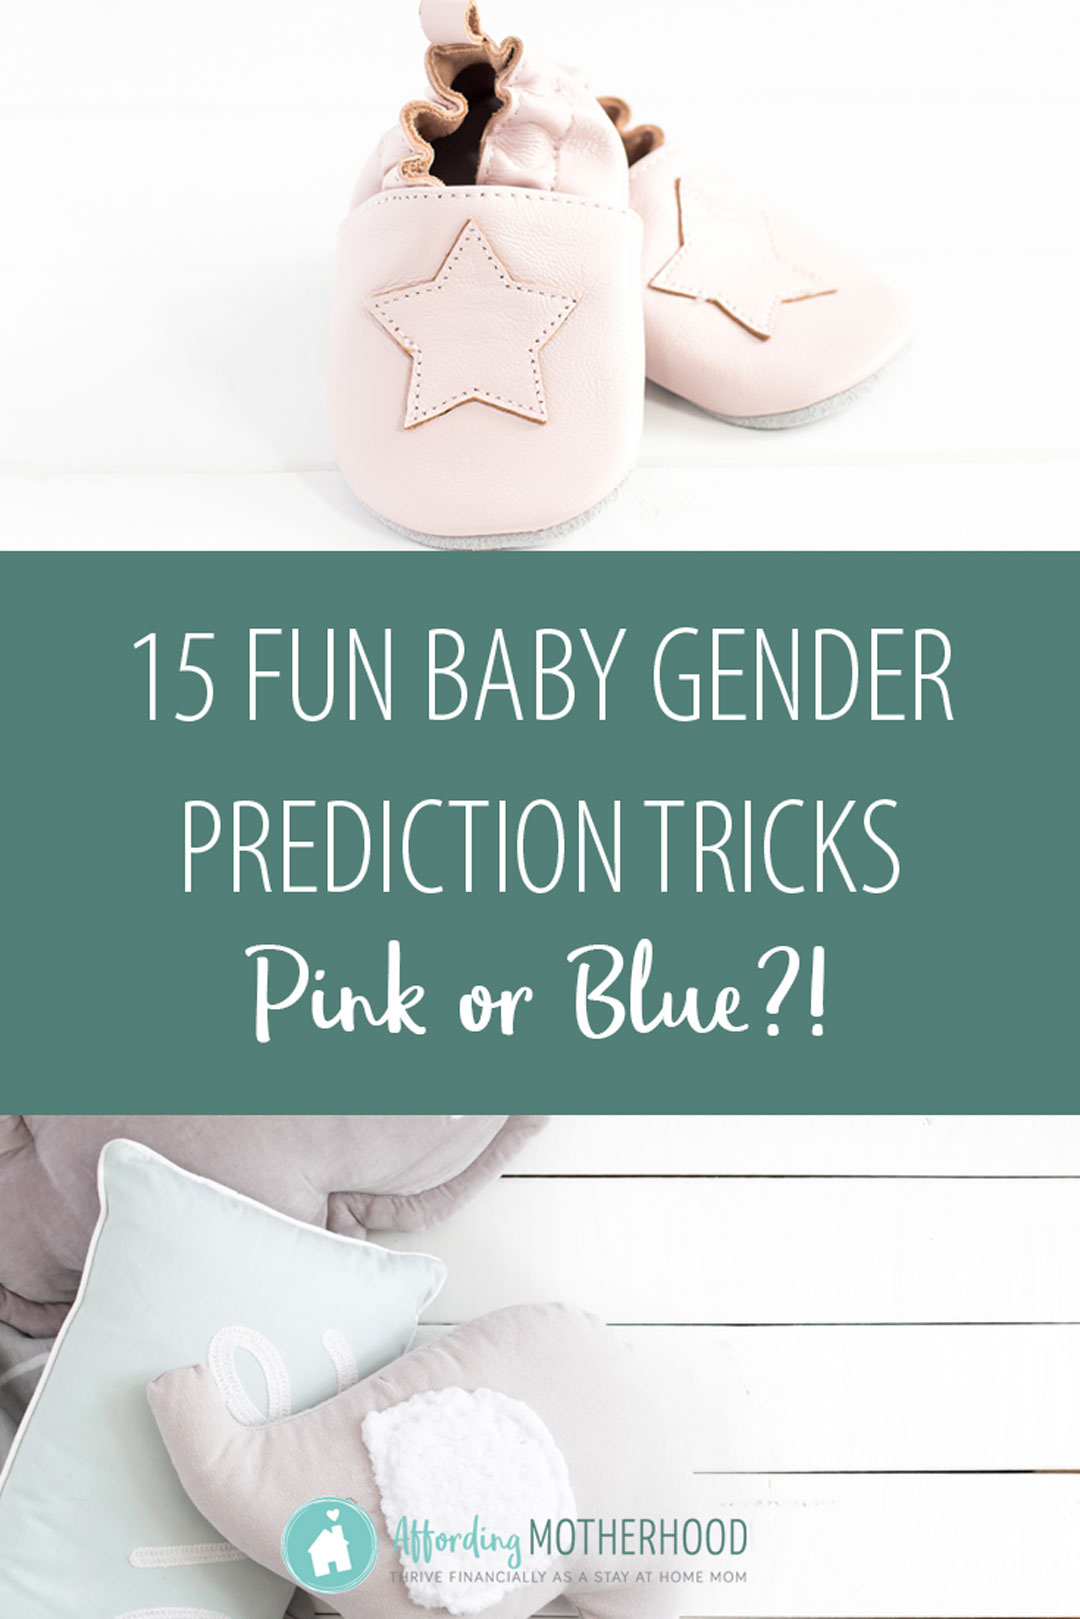 c3fa1878d9 15 Fun Tricks to Find Out Gender of Baby - Baby Gender Prediction Tips